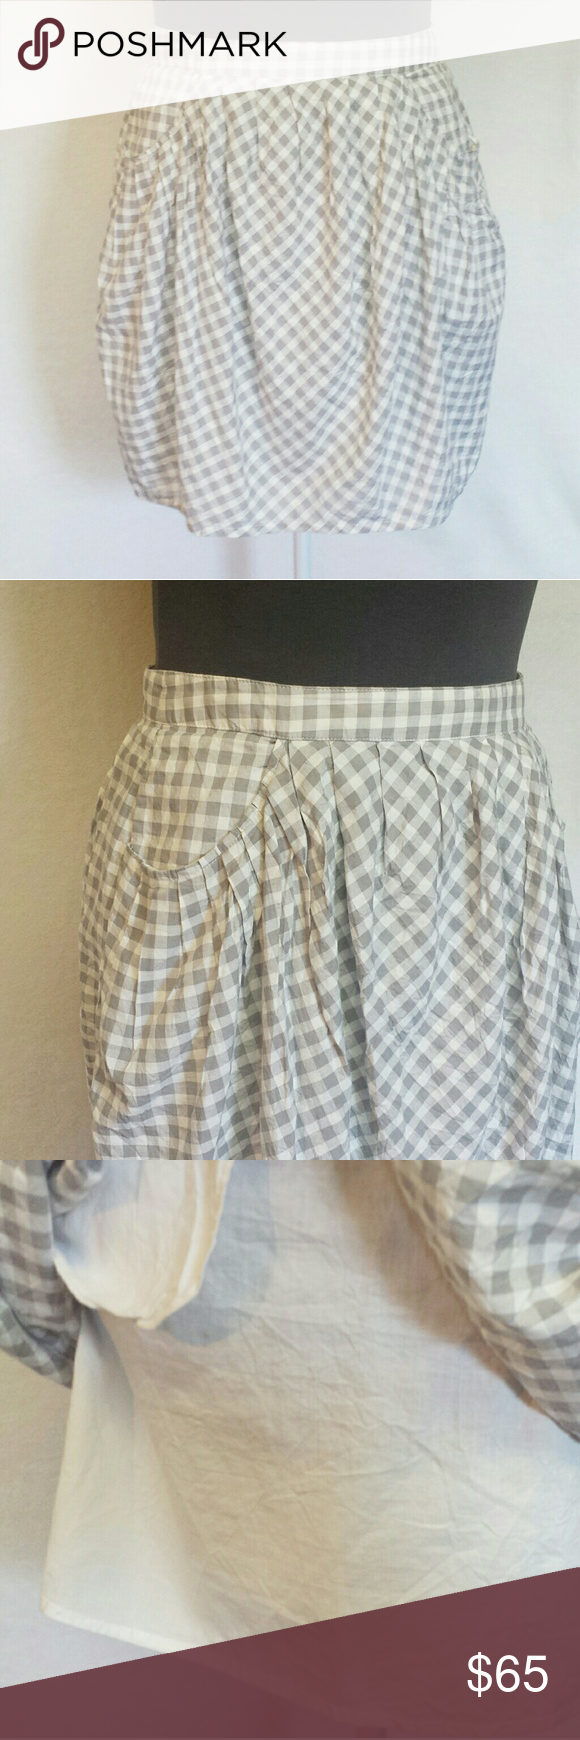 0c4294f4b Marc by Marc Jacobs Tiffany Checkered Skirt Adorable Tiffany checked style  layered skirt. This skirt